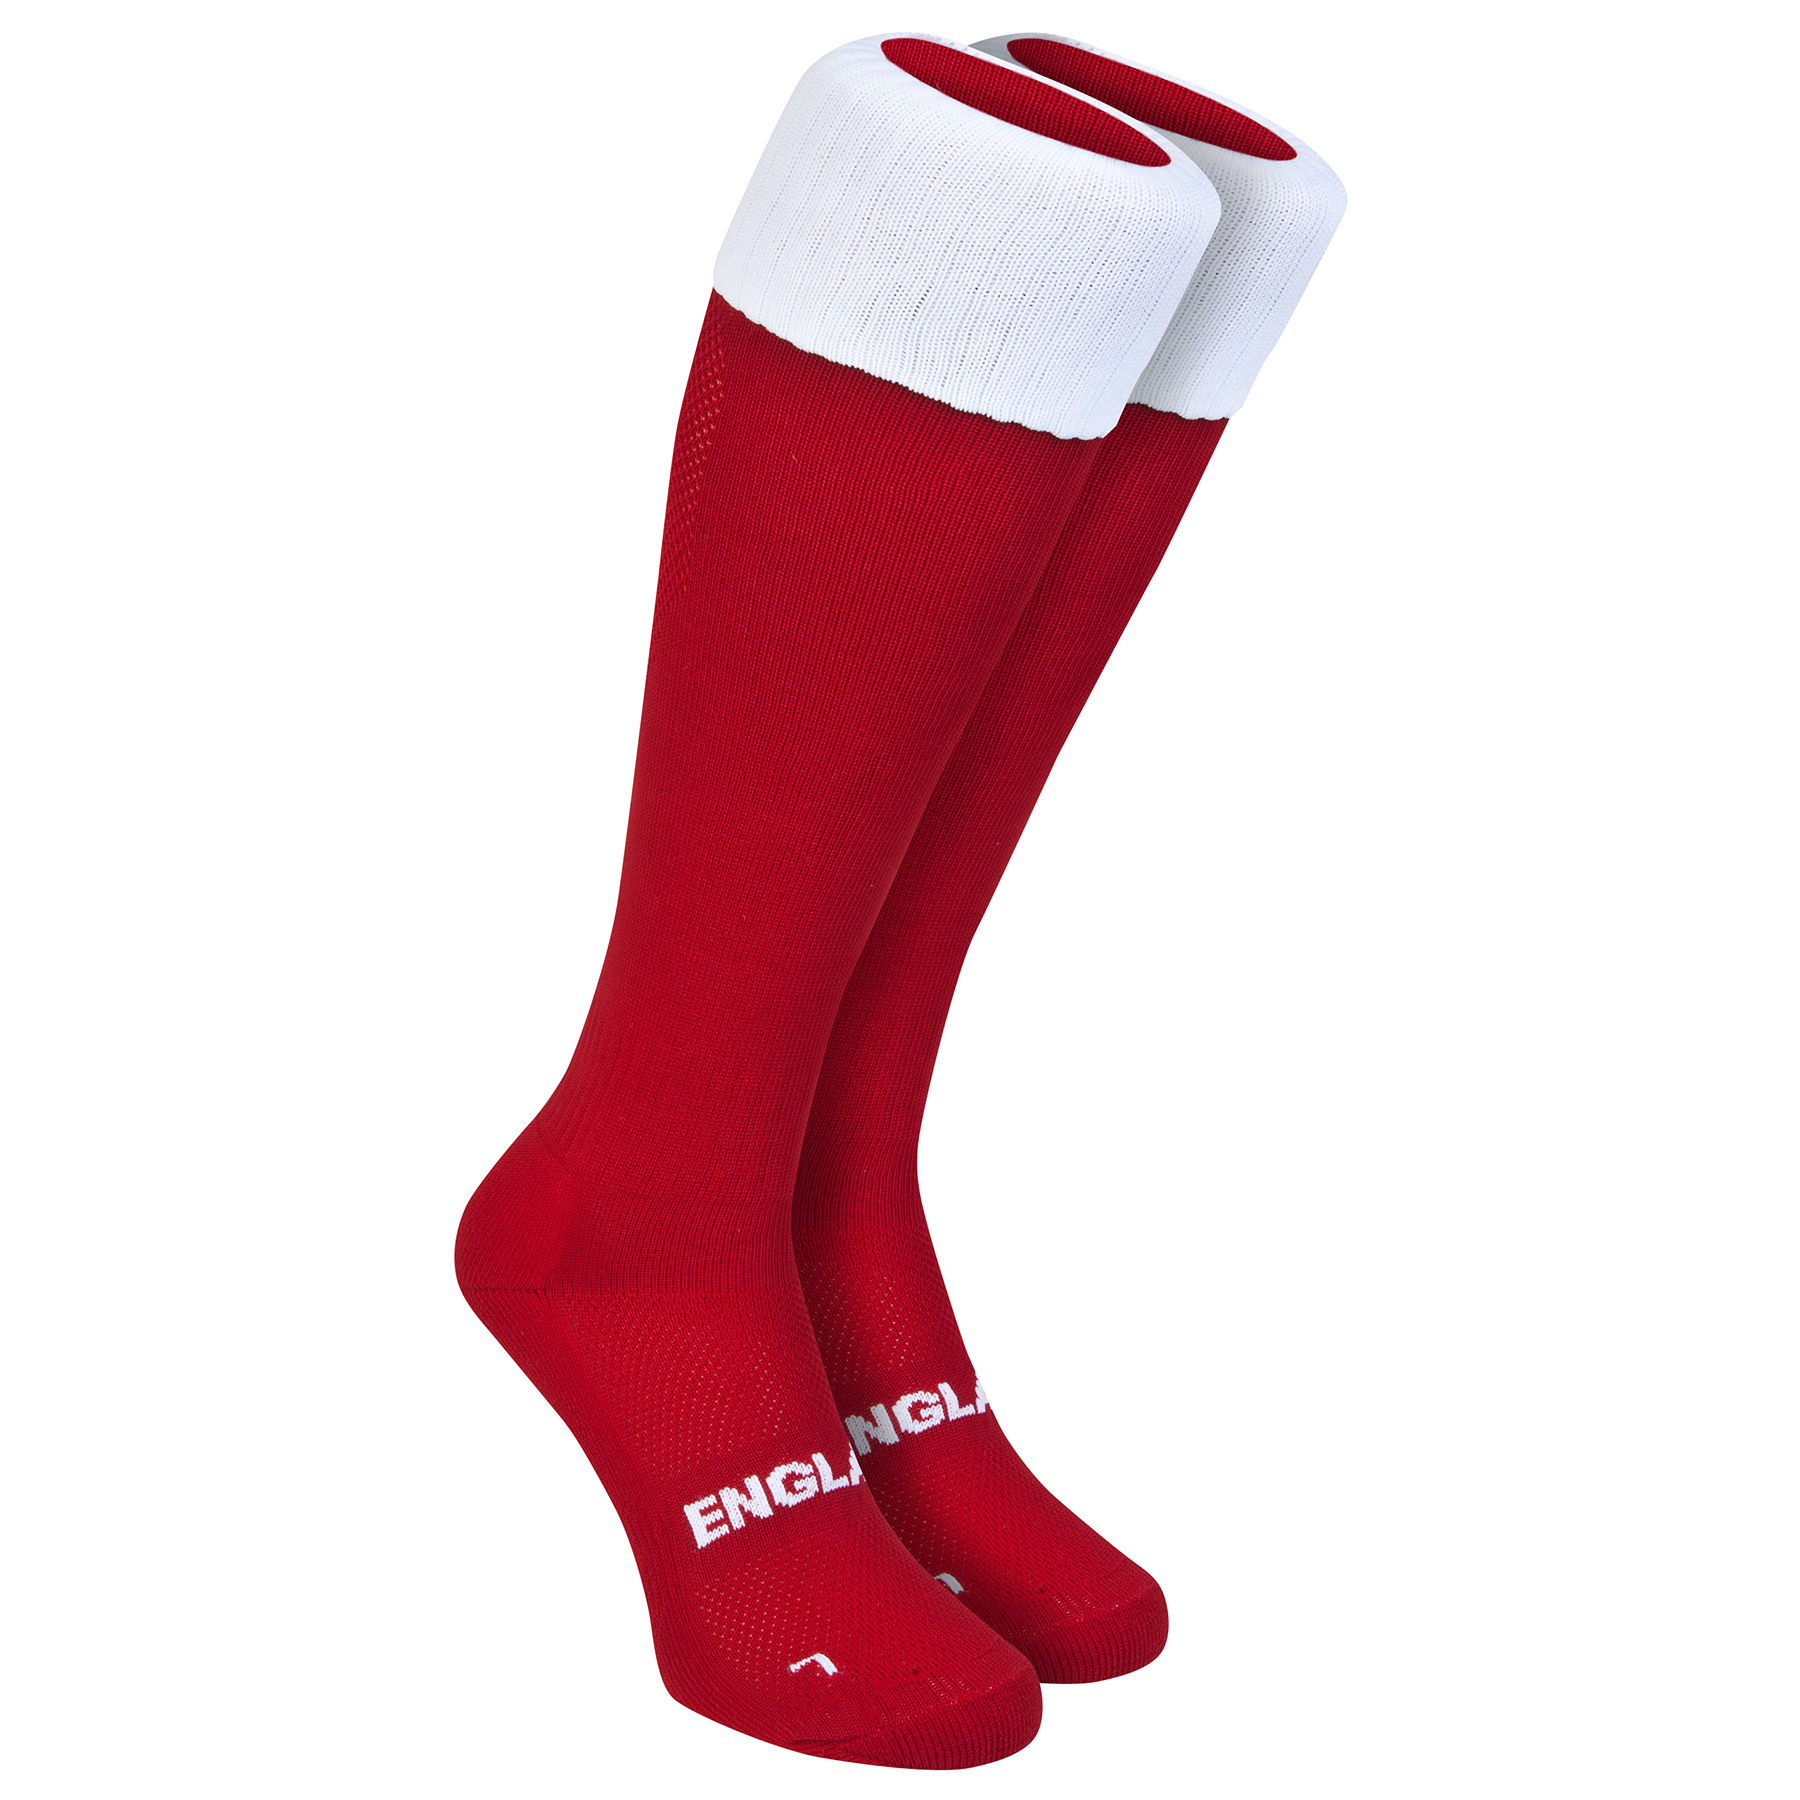 England Alternate Sock 2014/15 Red